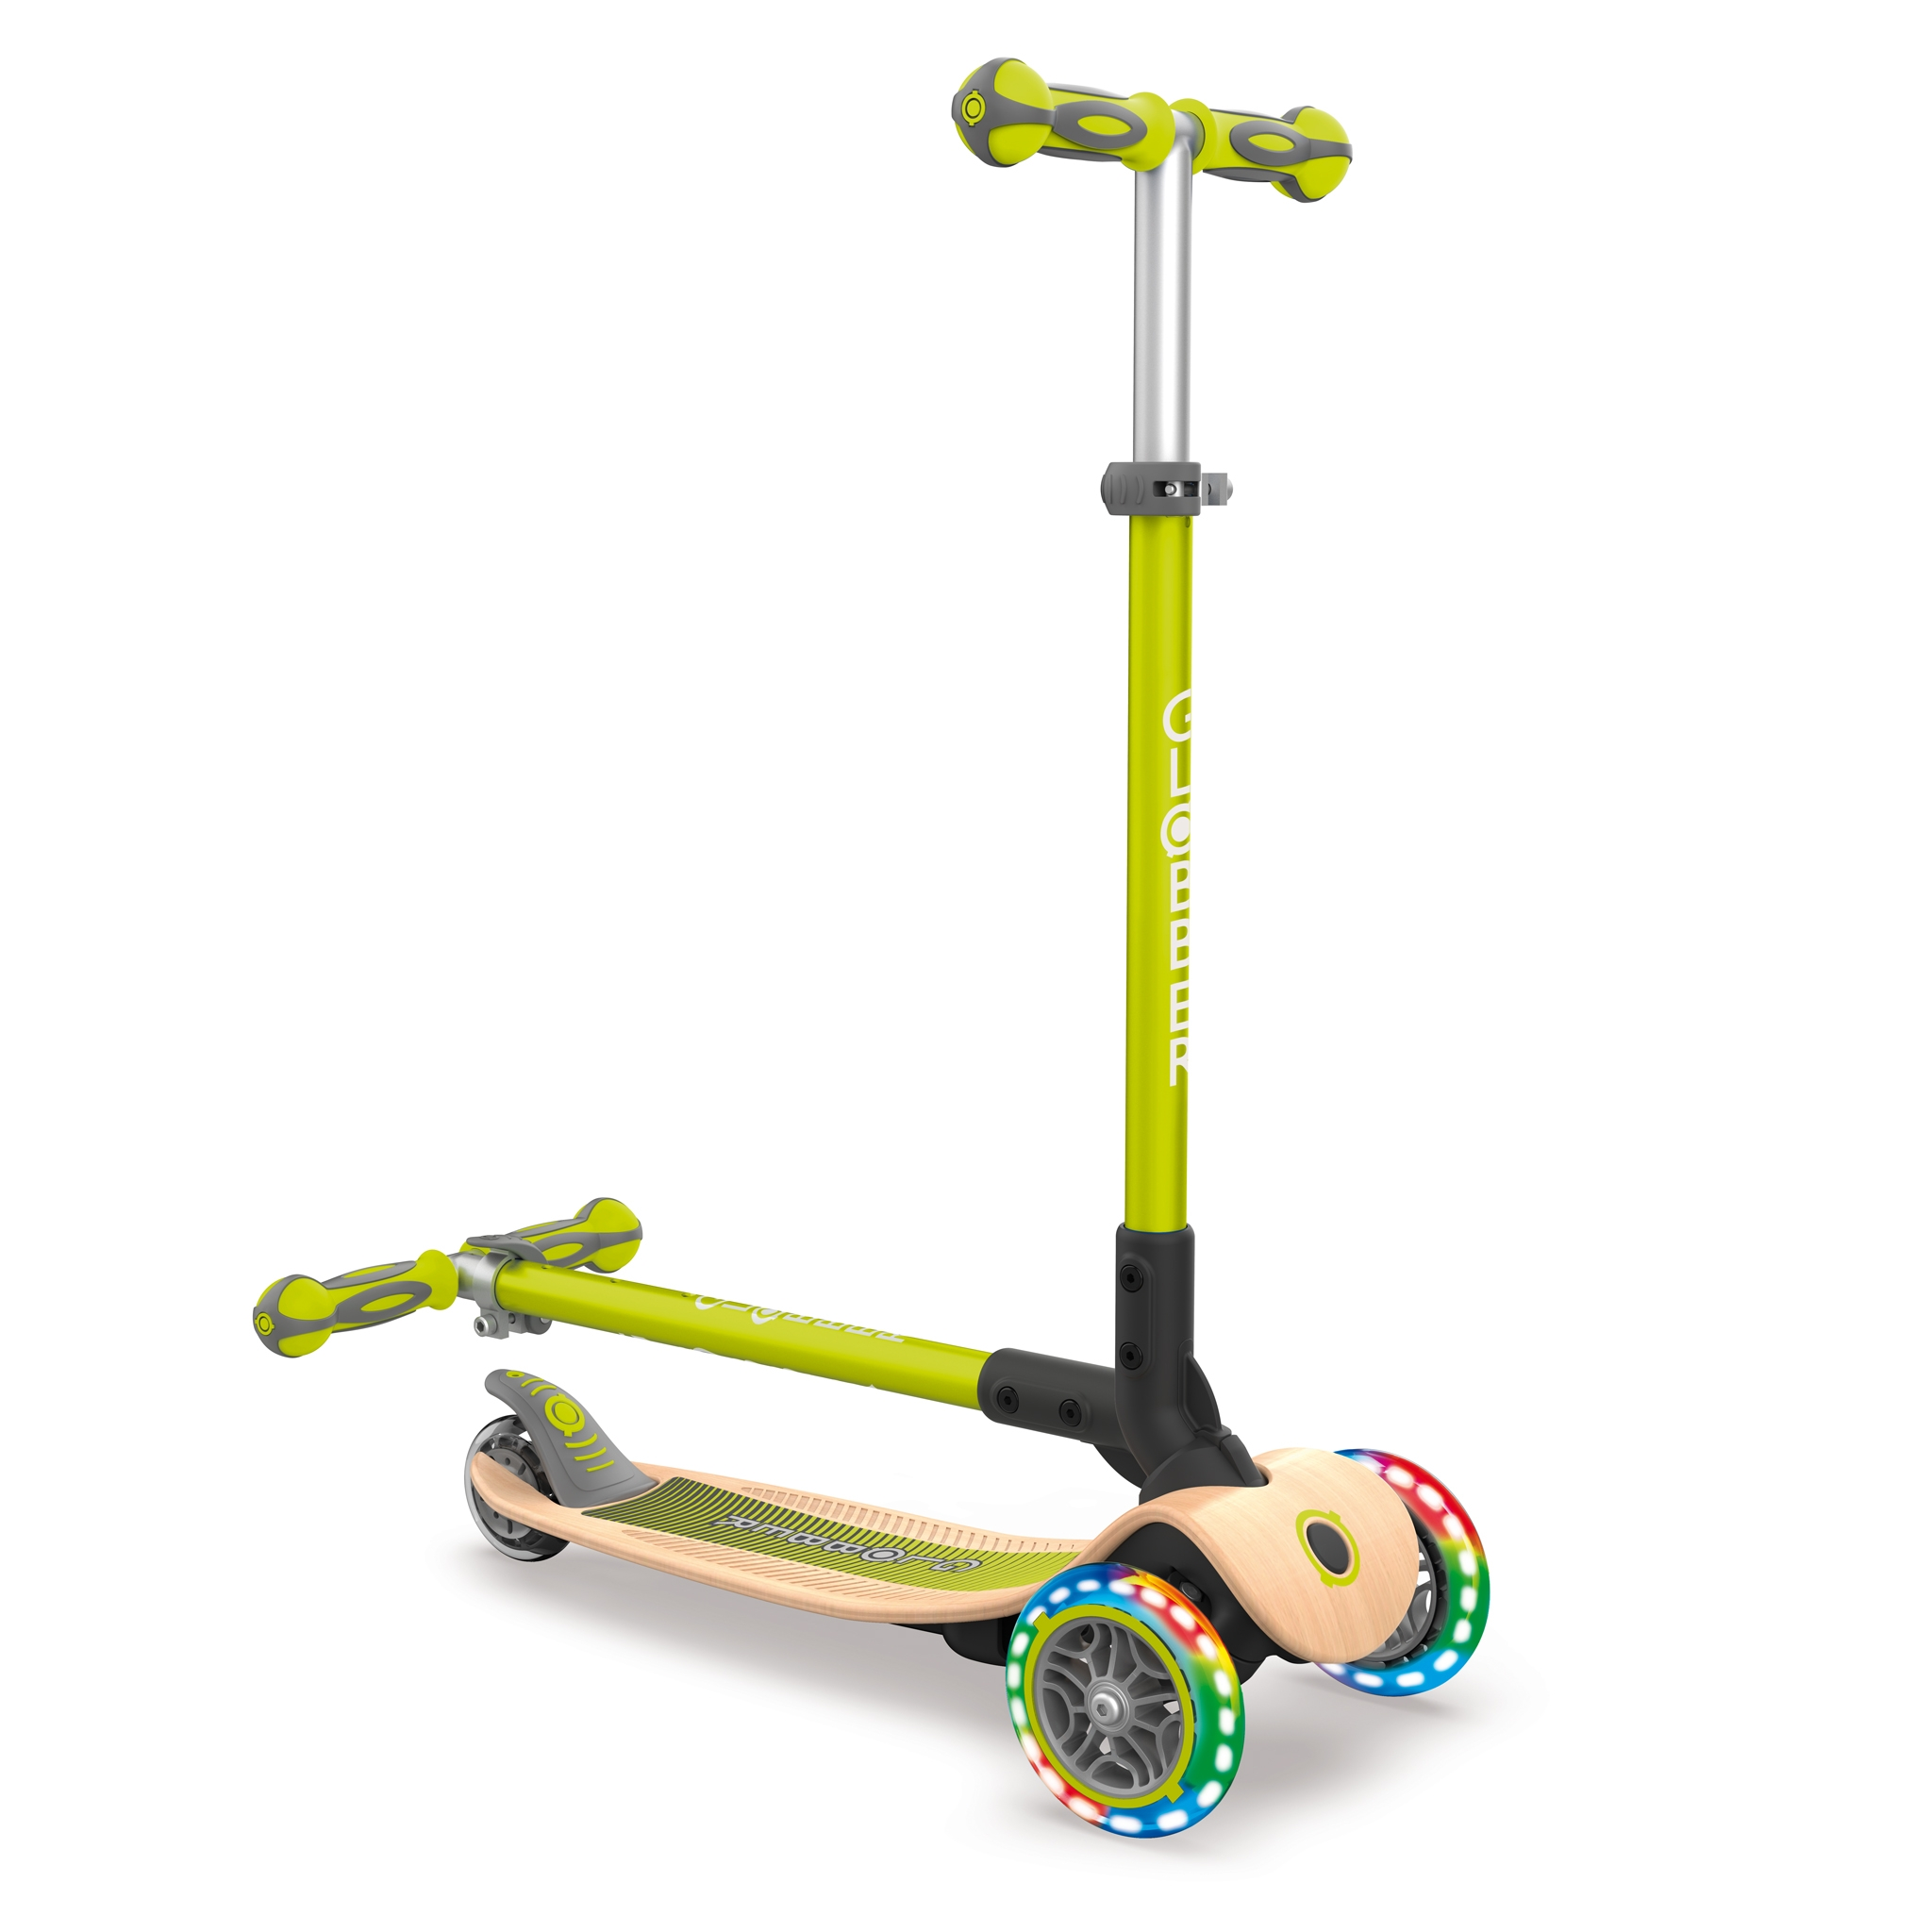 PRIMO-FOLDABLE-WOOD-LIGHTS-3-wheel-foldable-scooter-with-7-ply-wooden-scooter-deck-and-battery-free-light-up-wheels_lime-green